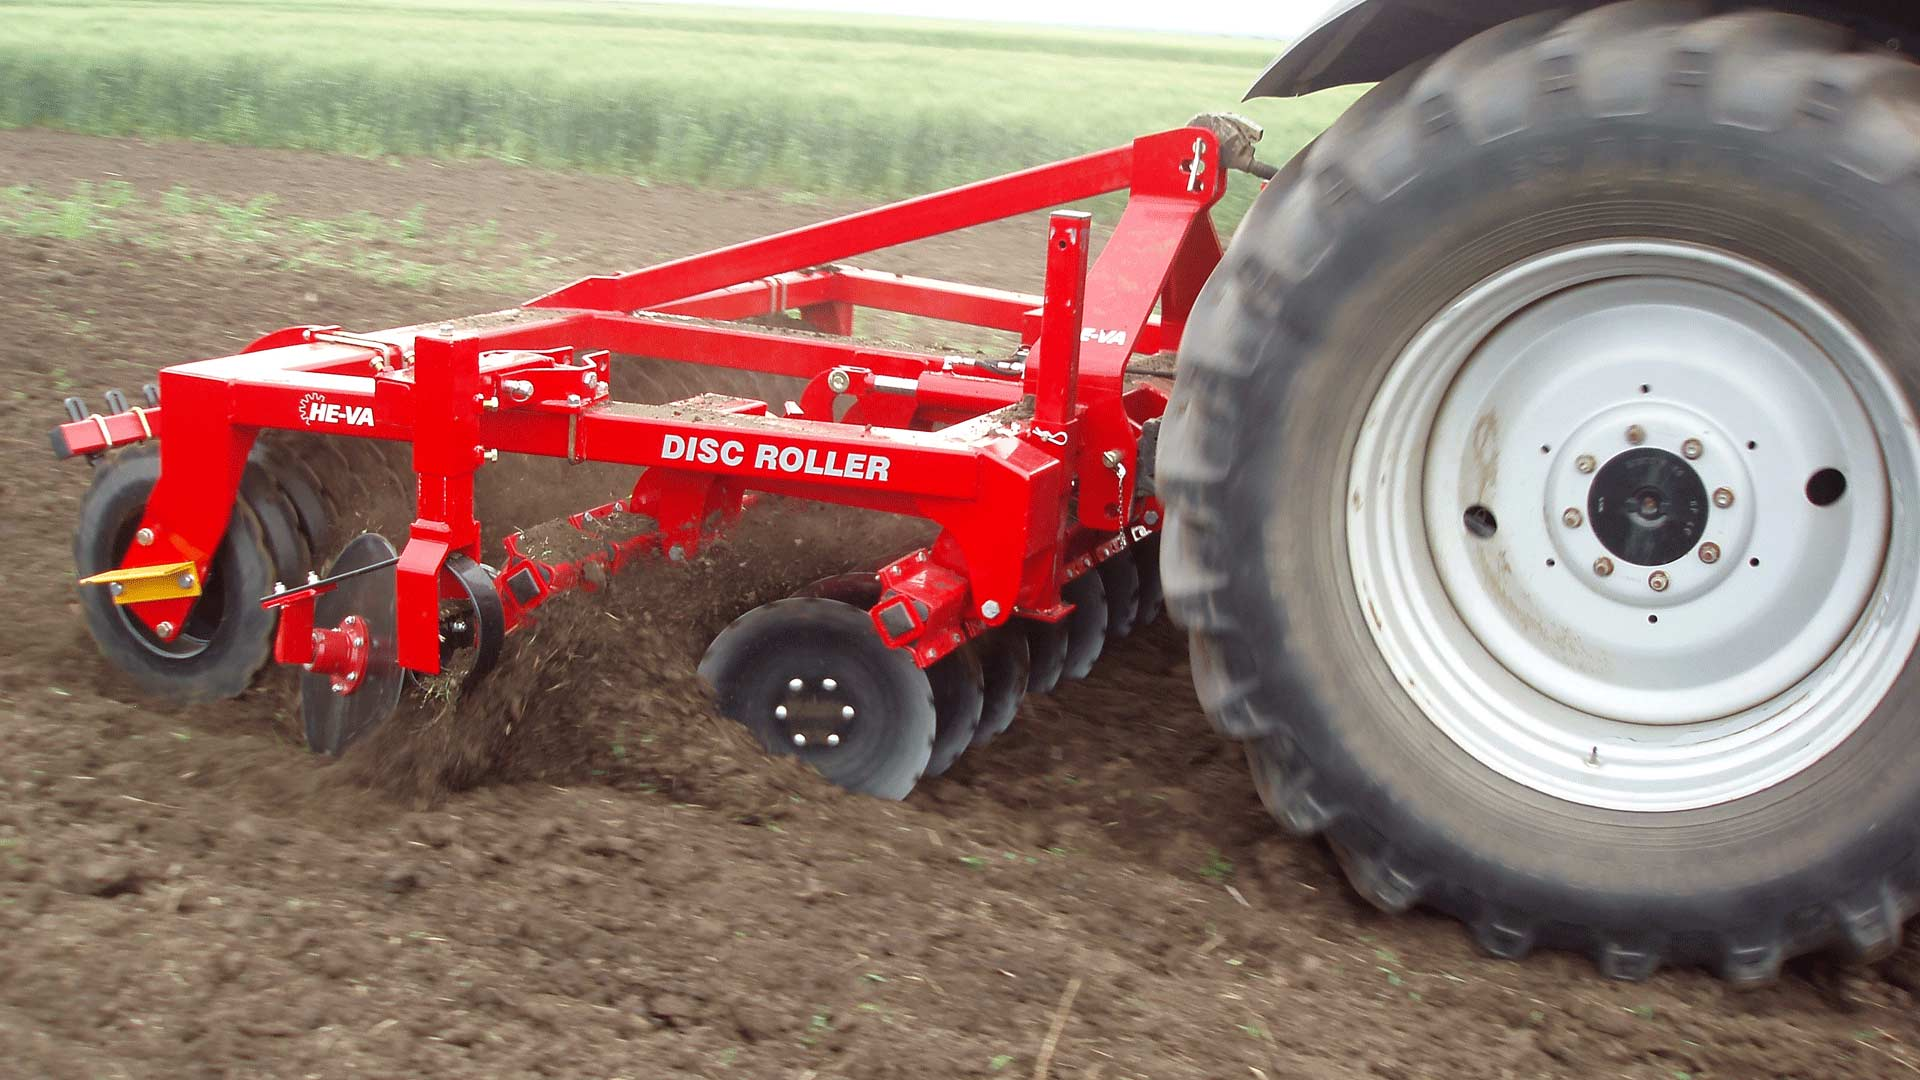 Disc-Roller Classic with one section, both trailed and three-point mounted, has been designed for tractors of app. 100 HP.  This means that smaller farms are offered the possibility of implementing the Disc-Roller technology and get a chance to do reduced tillage and achieve cost savings.